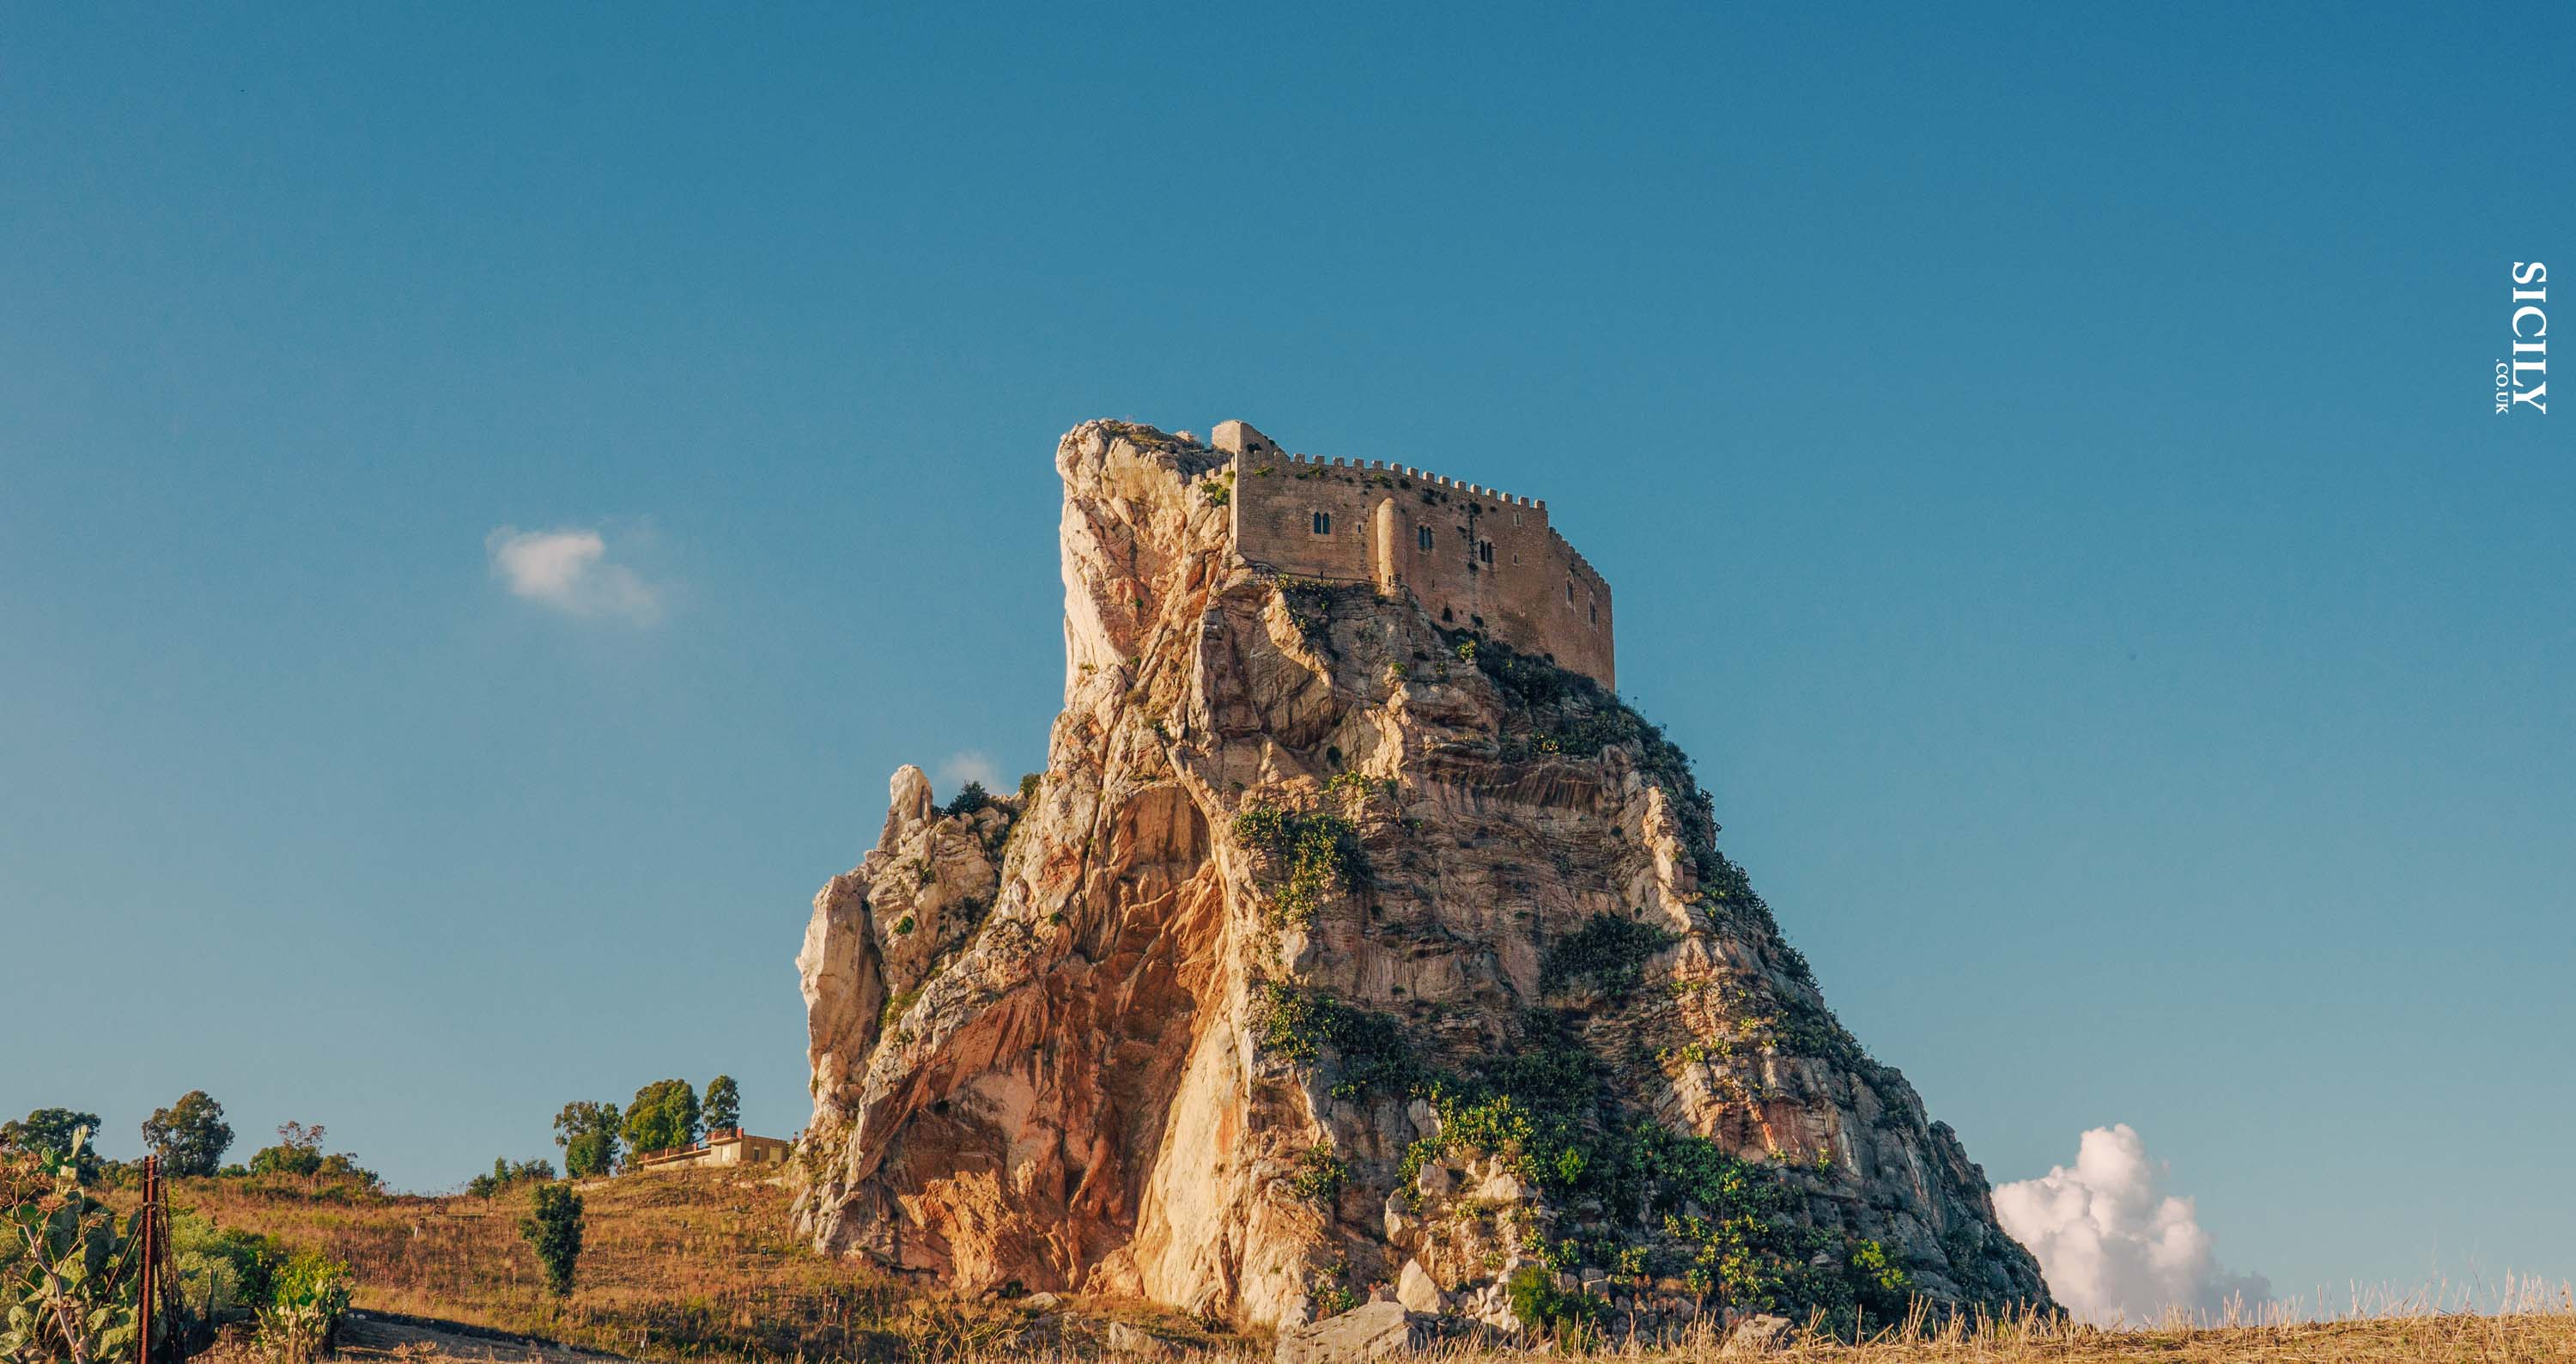 Mussomeli Castle - Sicily